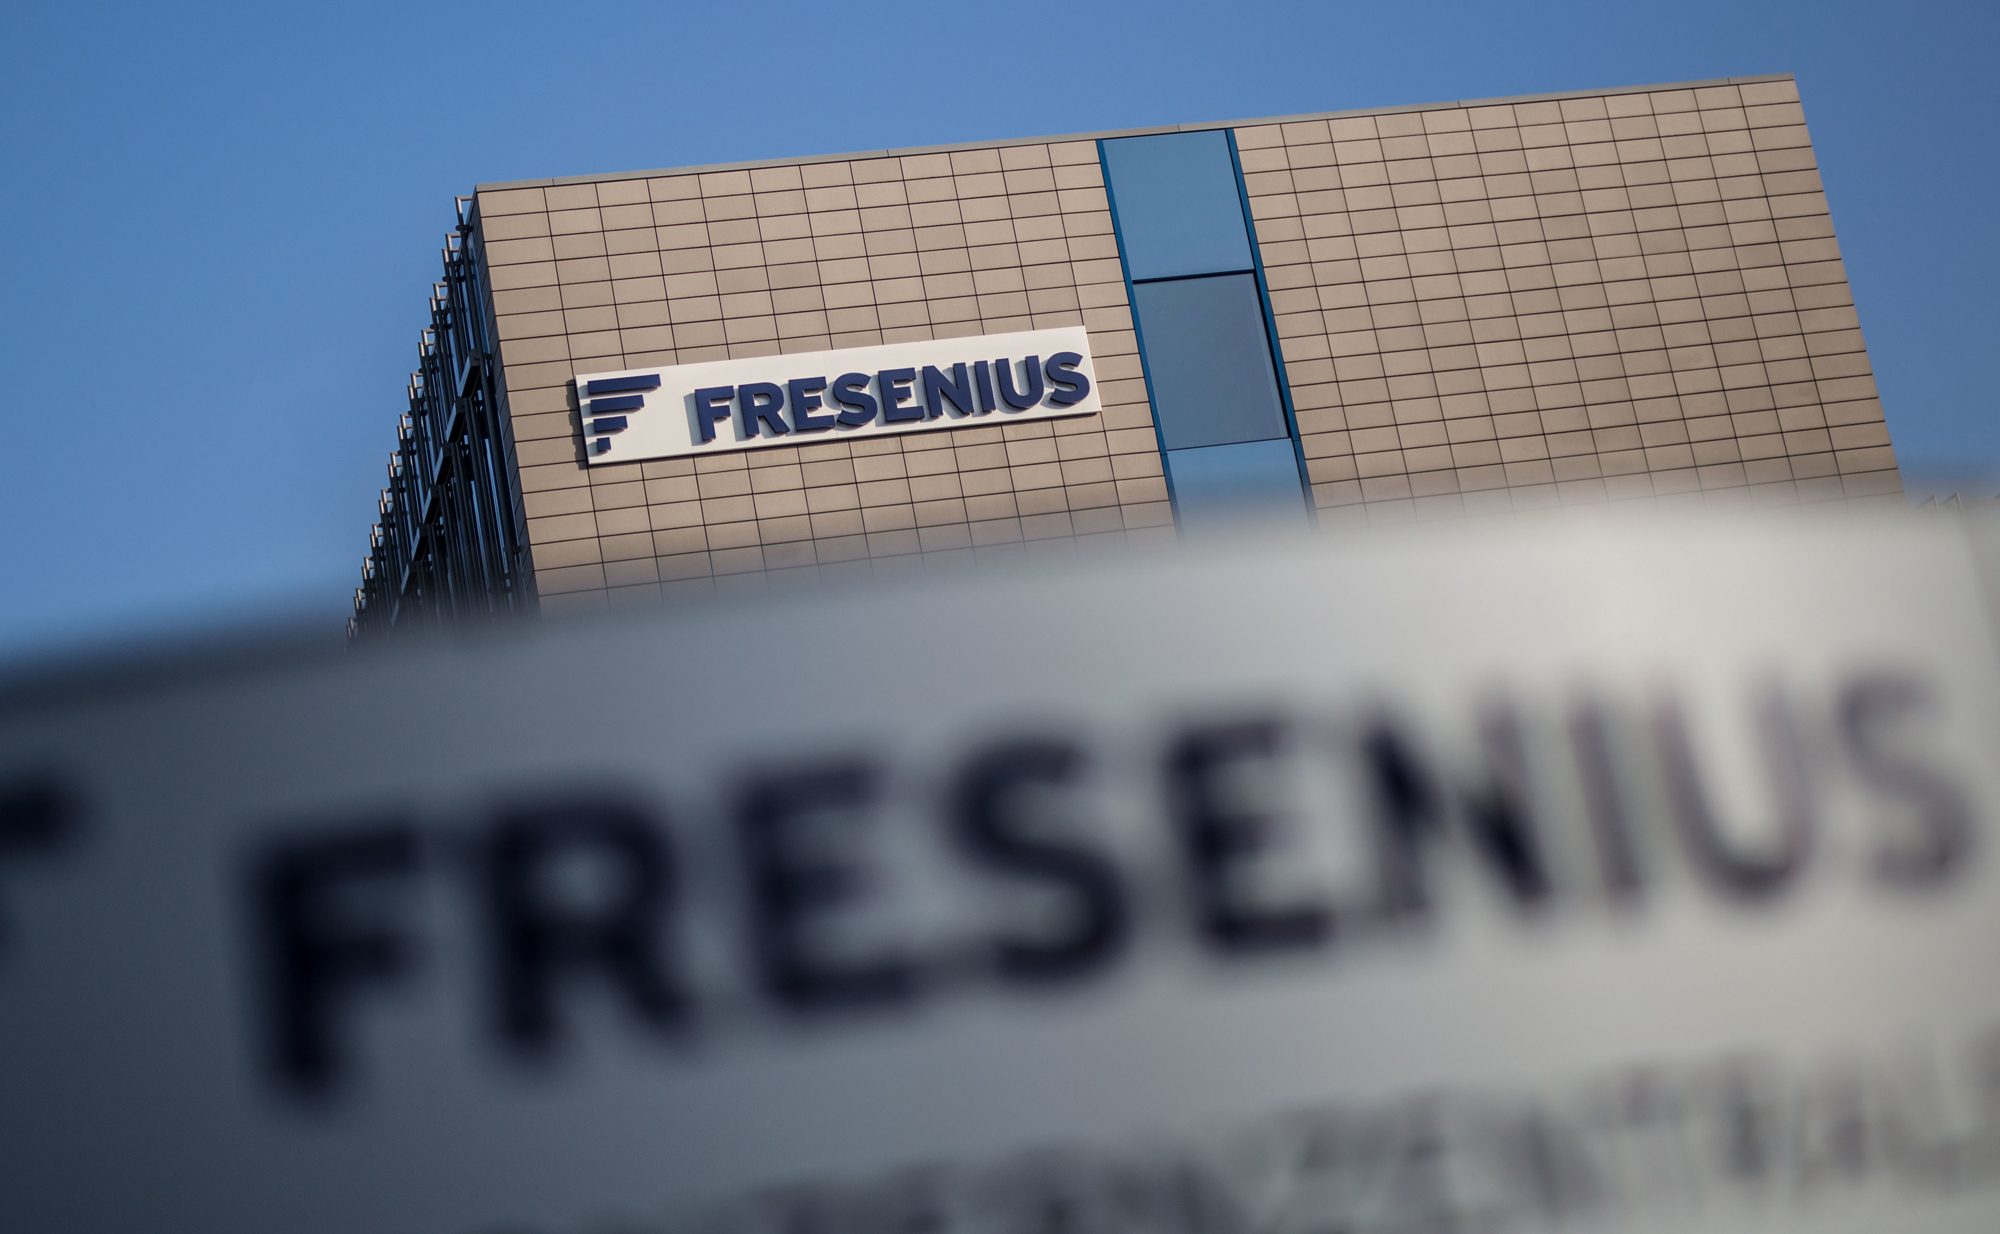 Der Firmensitz von Fresenius in Bad Homburg. Foto: dpa